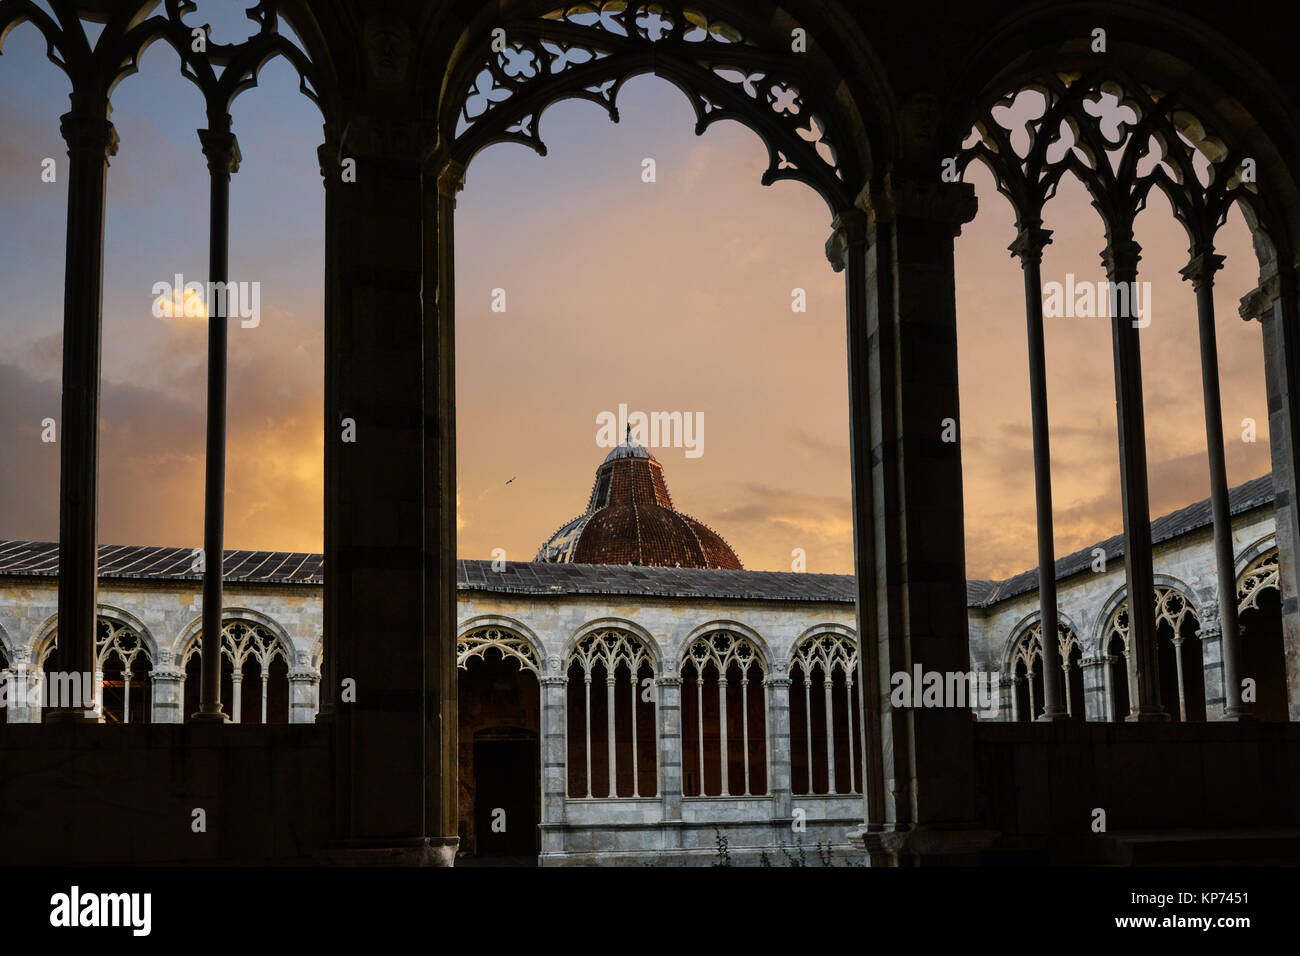 The dome of the baptistery from the Camposanto on the Piazza del duomo in Pisa Italy Stock Photo